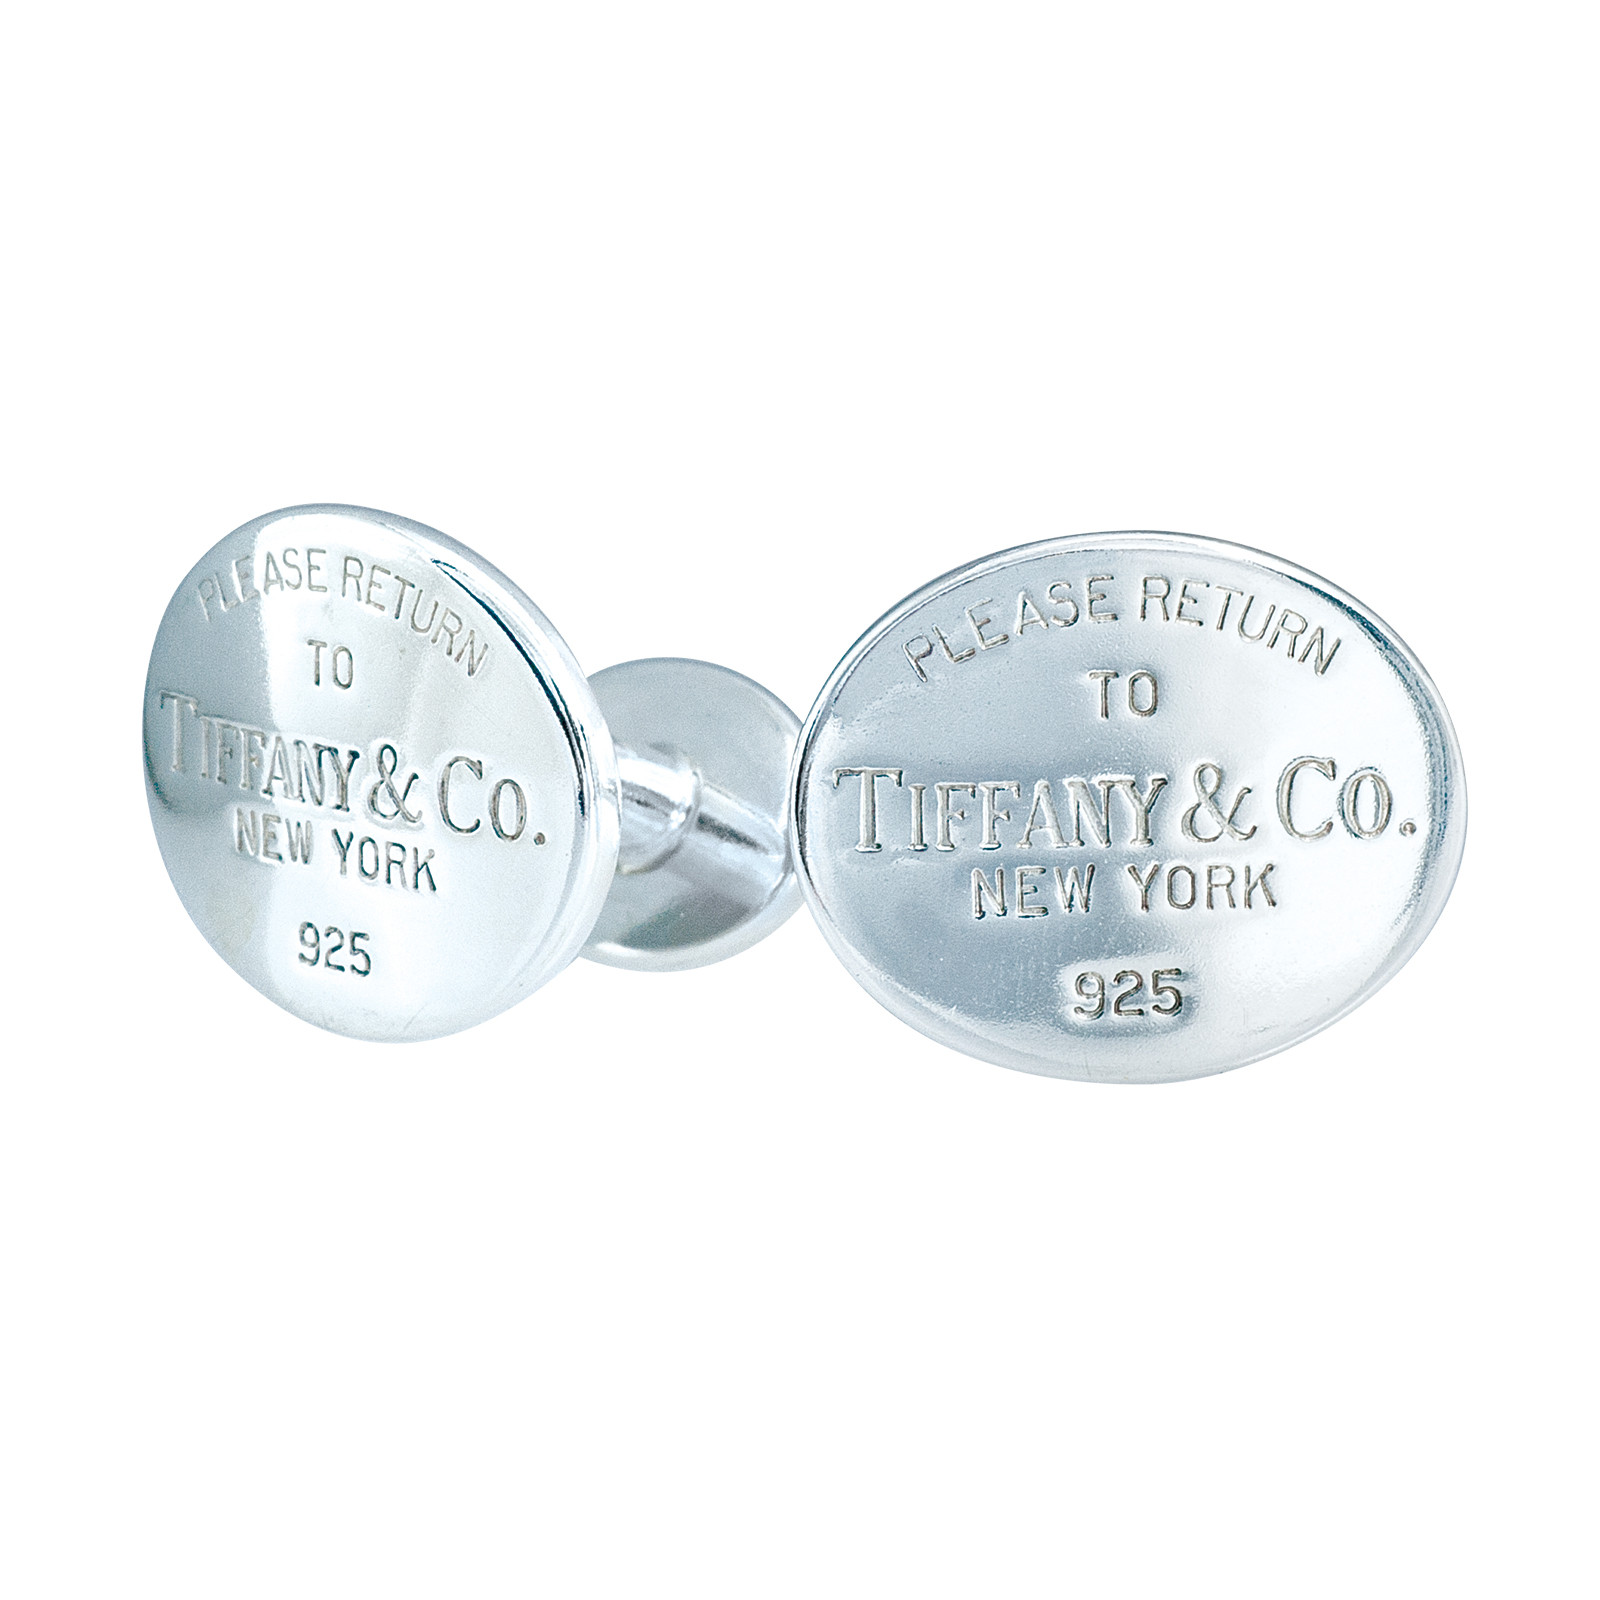 Buy Accessories Vintage Tiffany Co Sterling Silver Please Return To Tiffany Oval Cufflinks Return To Tiffany Cufflinks